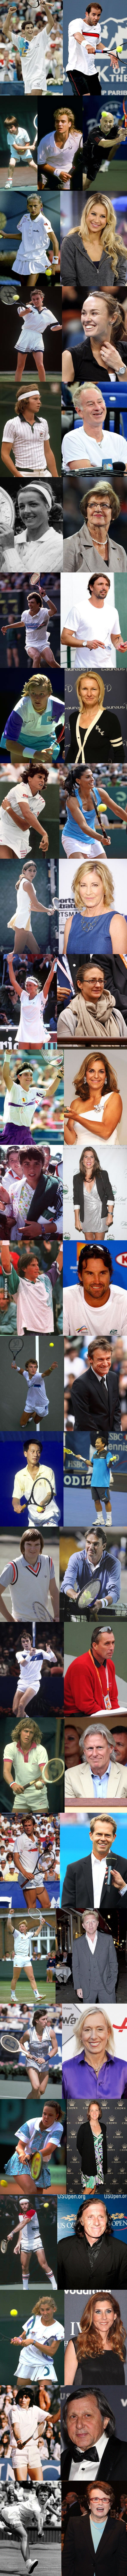 See what tennis legends from the past look like today.